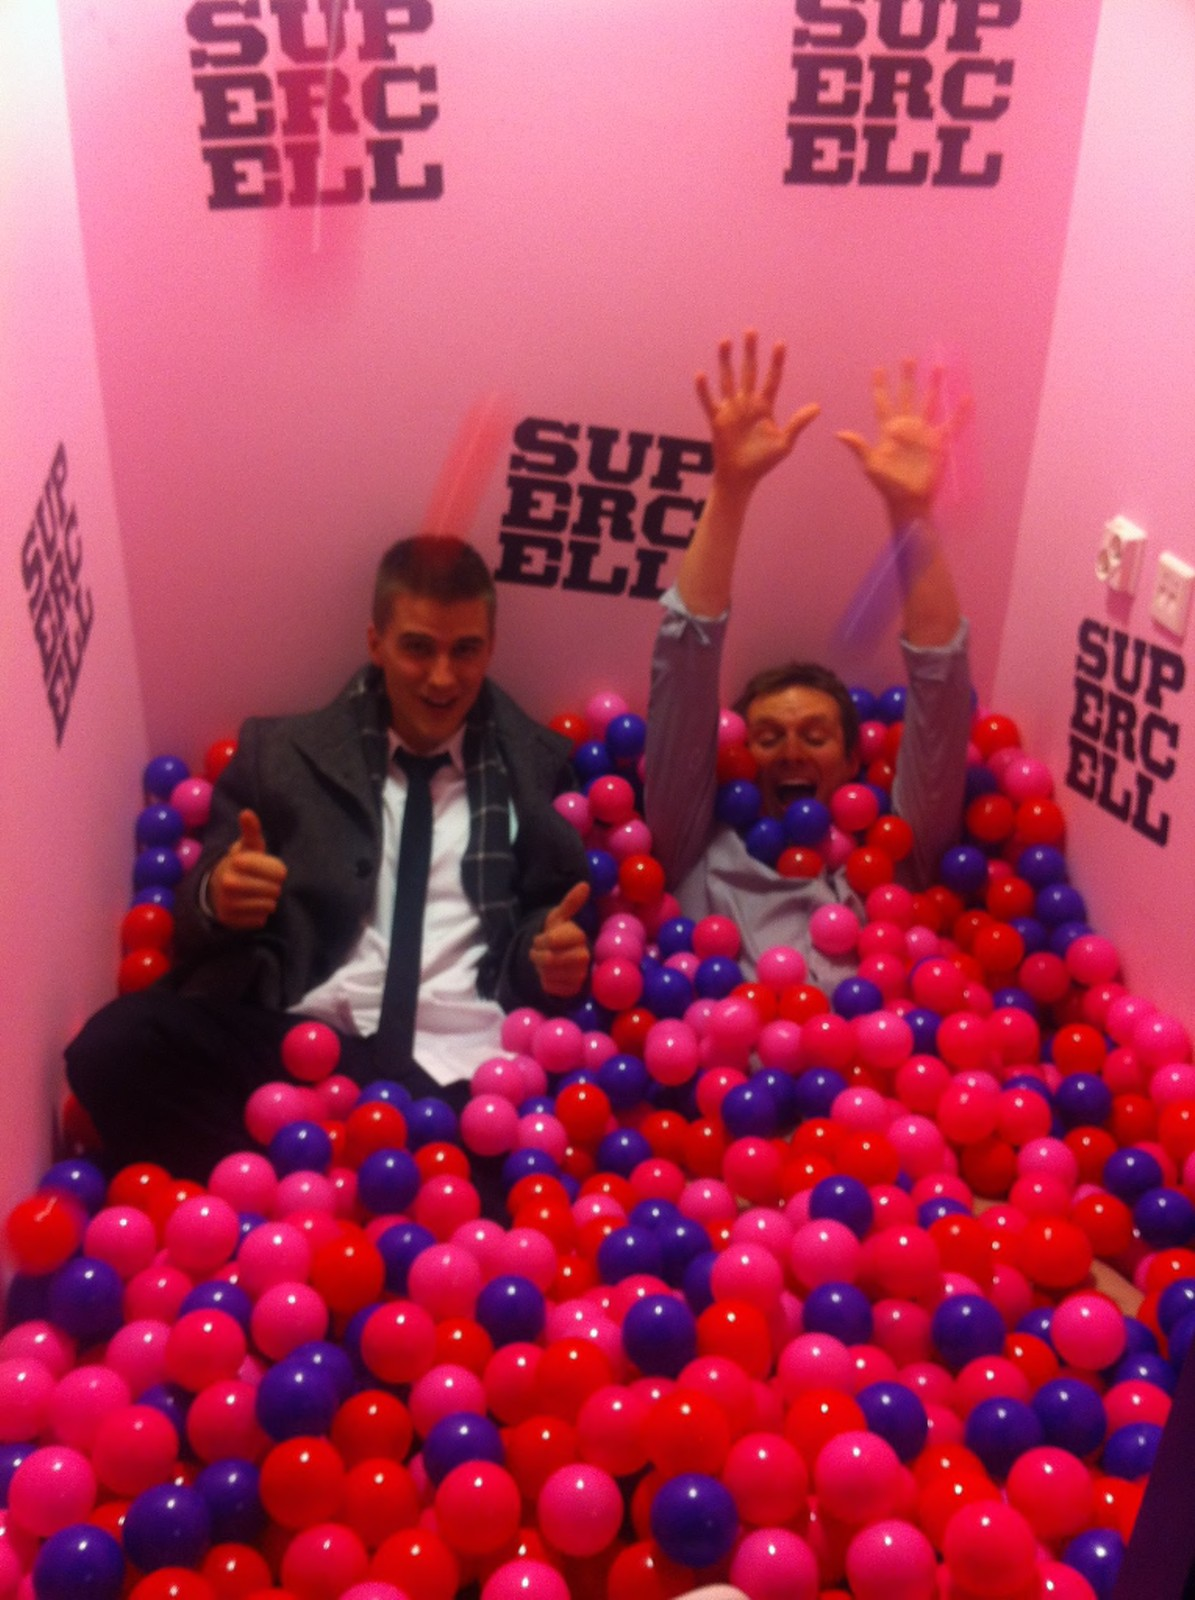 Supercell's totally modest ballpit